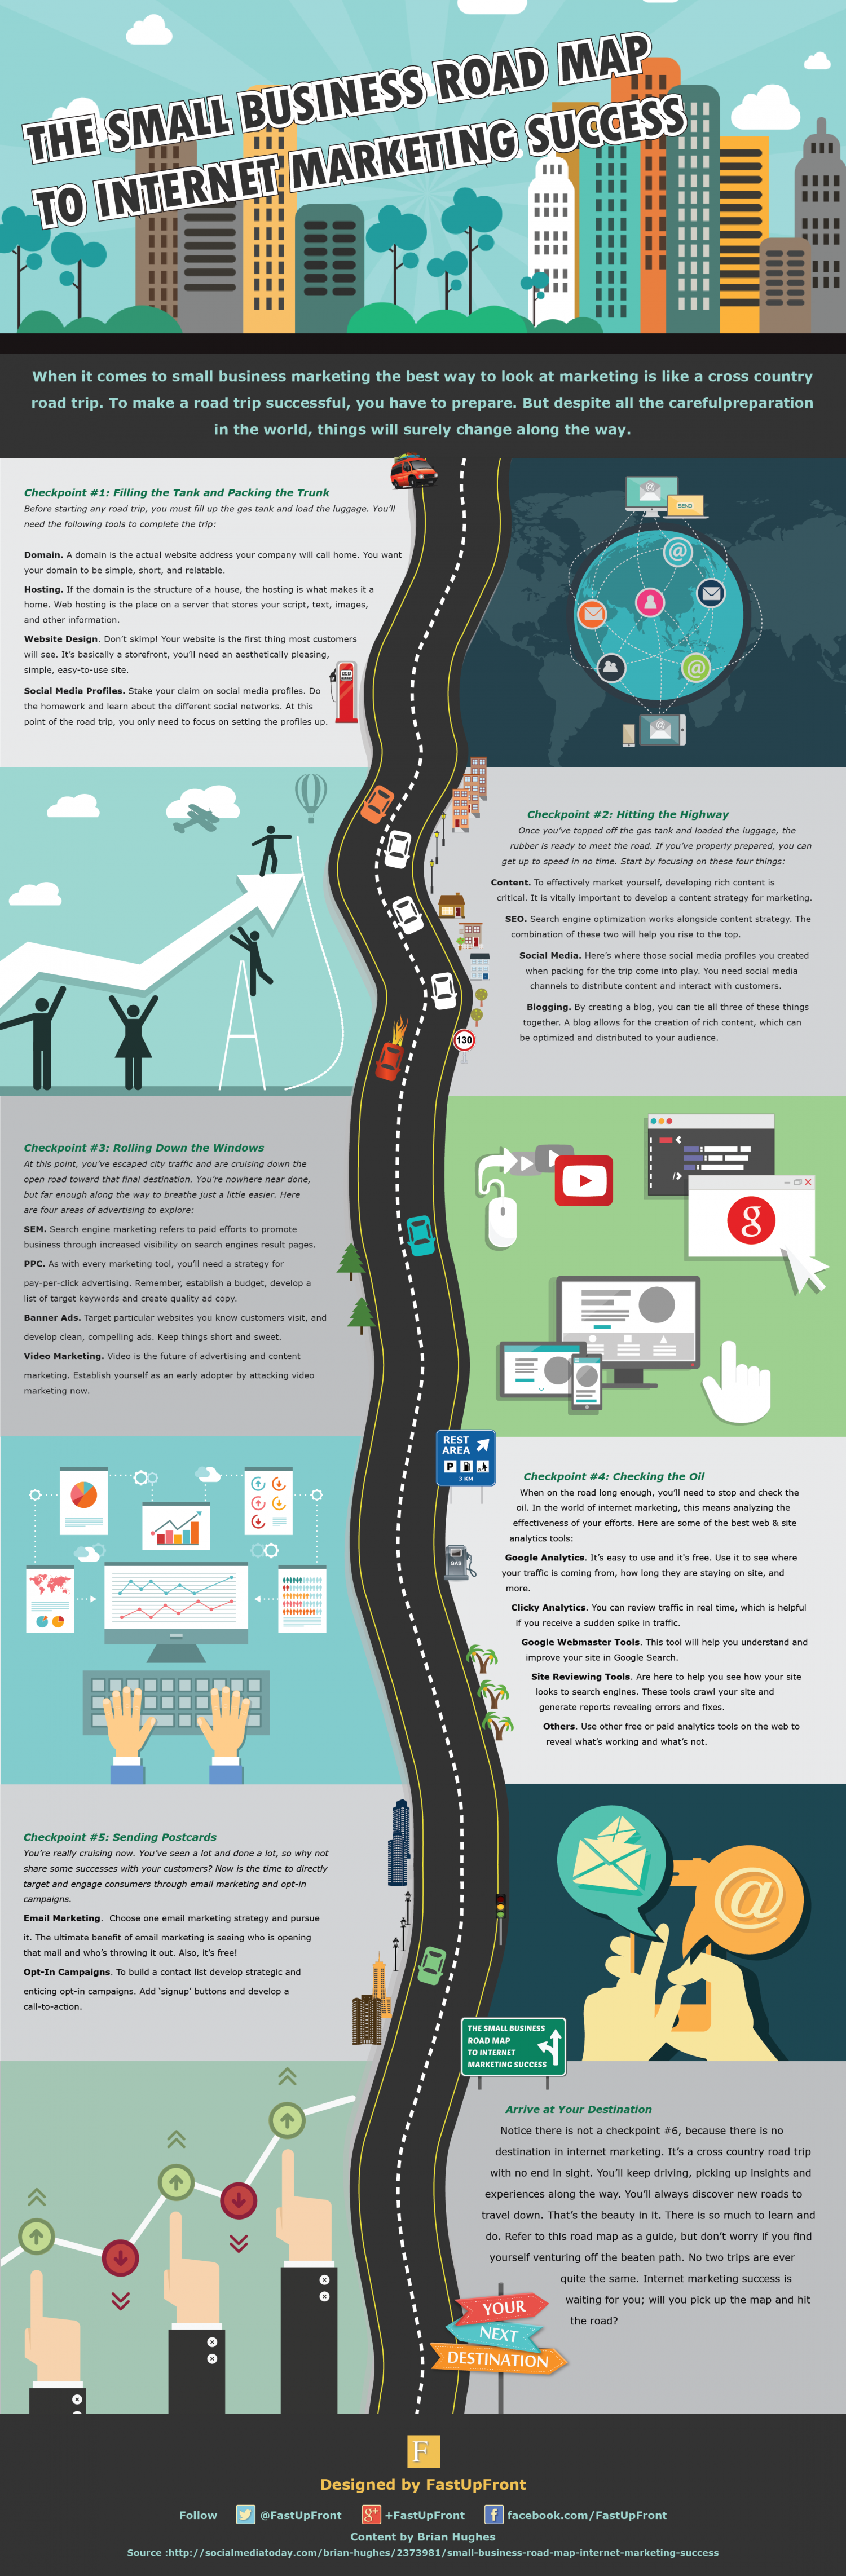 The Small Business Road Map to Internet Marketing Success Infographic